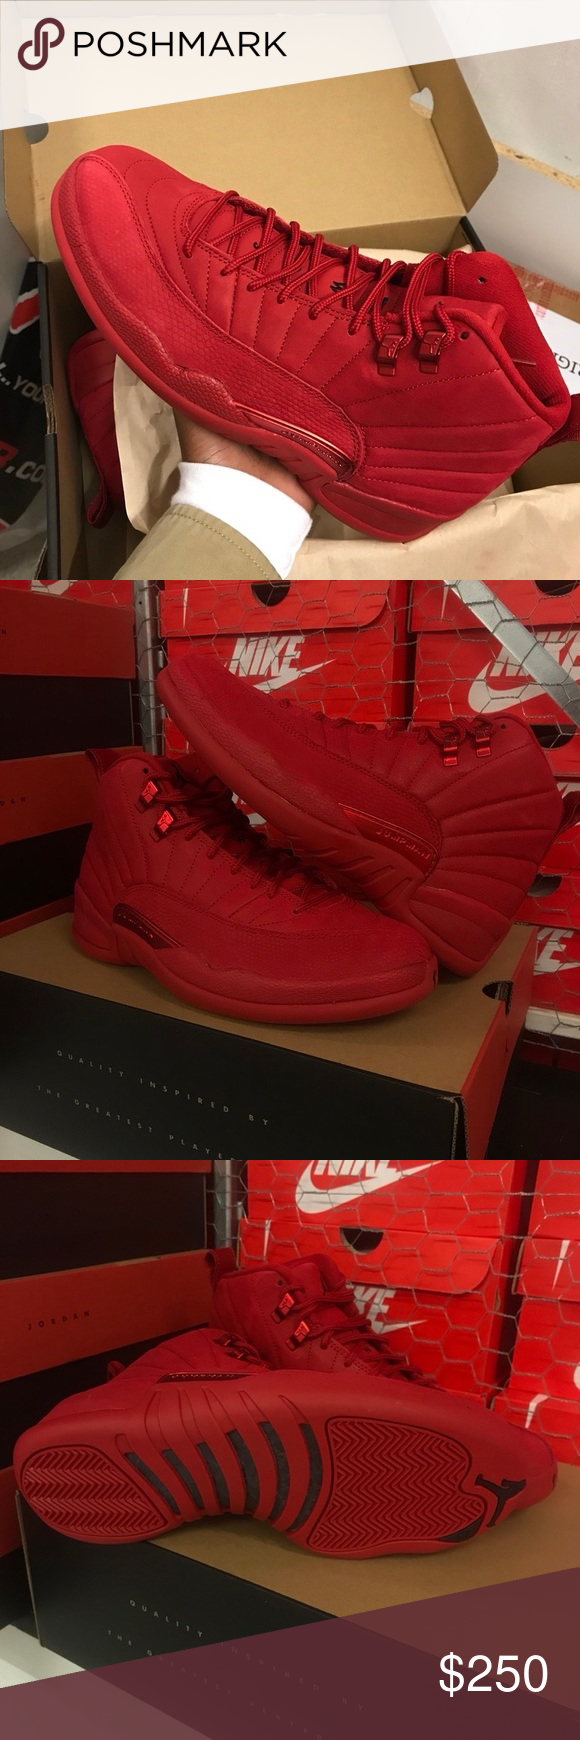 """b737bc5988f Air Jordan 12 """"Gym Red"""" Brand new just released Gym red Suede 12s Deadstock  in Jordan retro Box Receipt included Shoes Sneakers"""